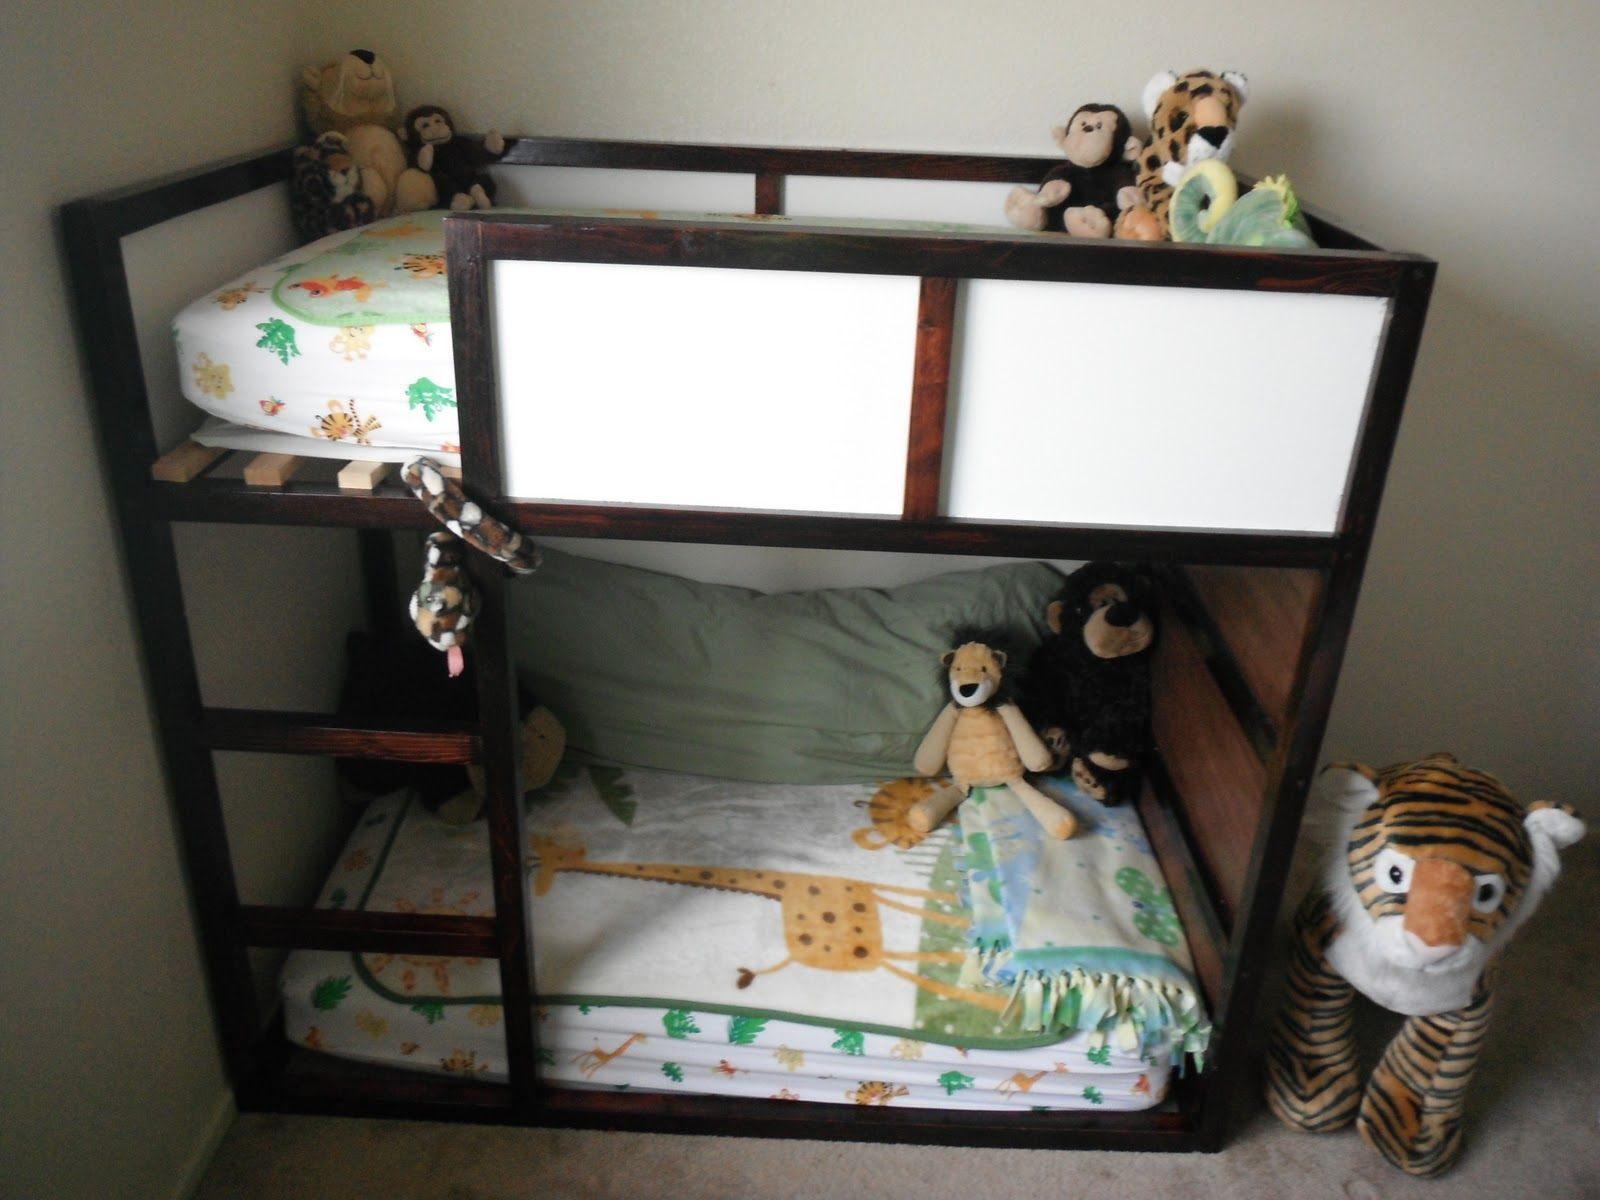 Best How To Create The Toddler Bunk Bed From Ikea For 30Ish 400 x 300